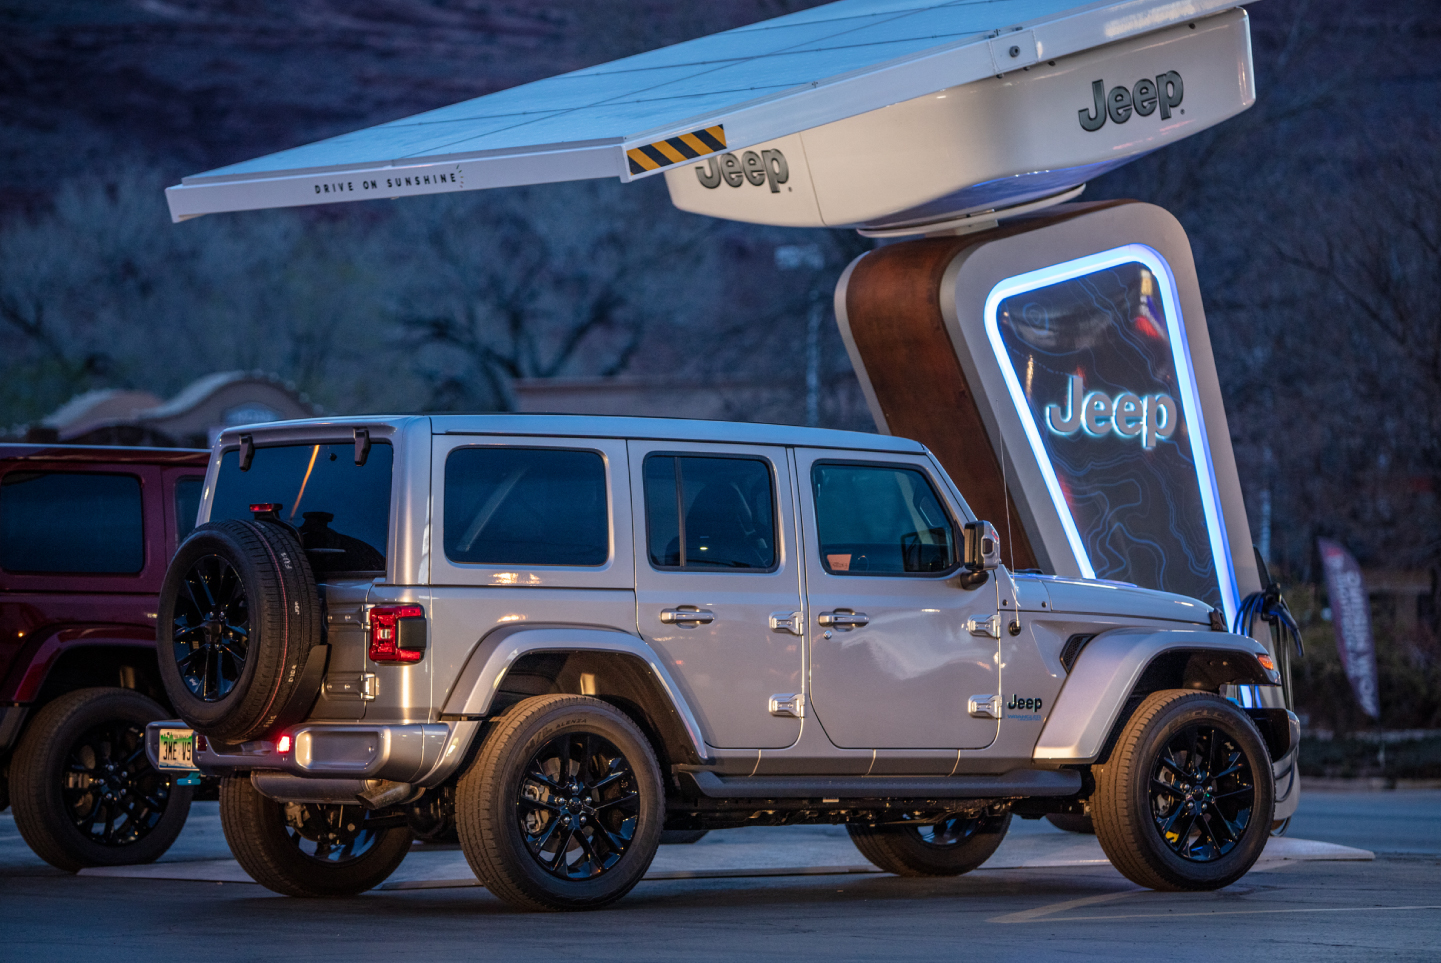 Jeep Wrangler 4xe at charging station